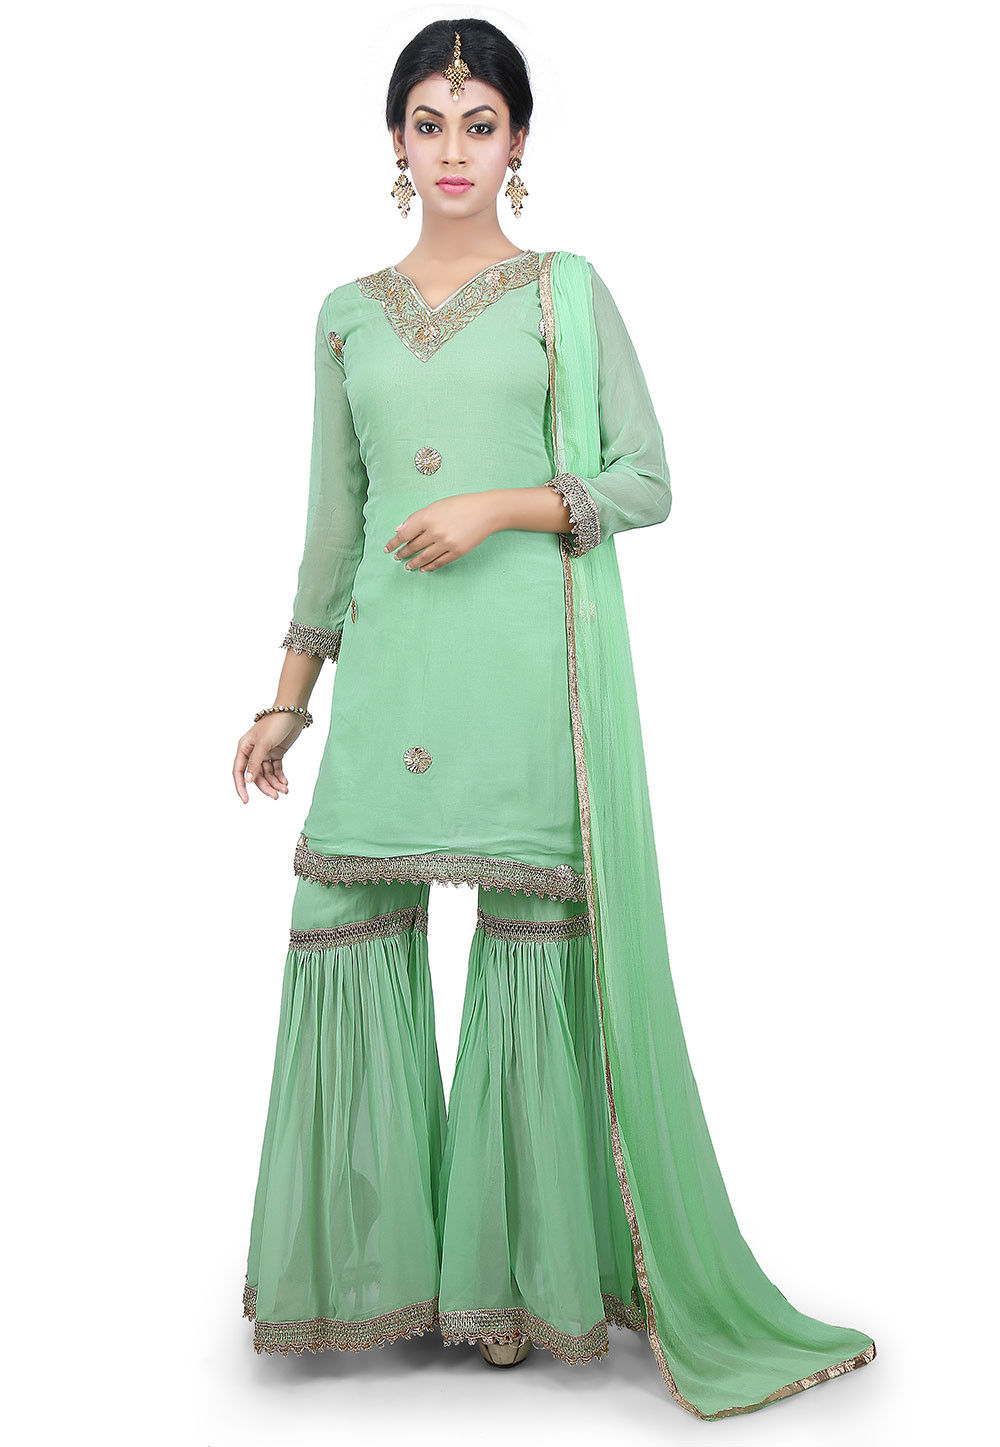 Hand Embroidered Neckline Georgette Pakistani Suit in Green